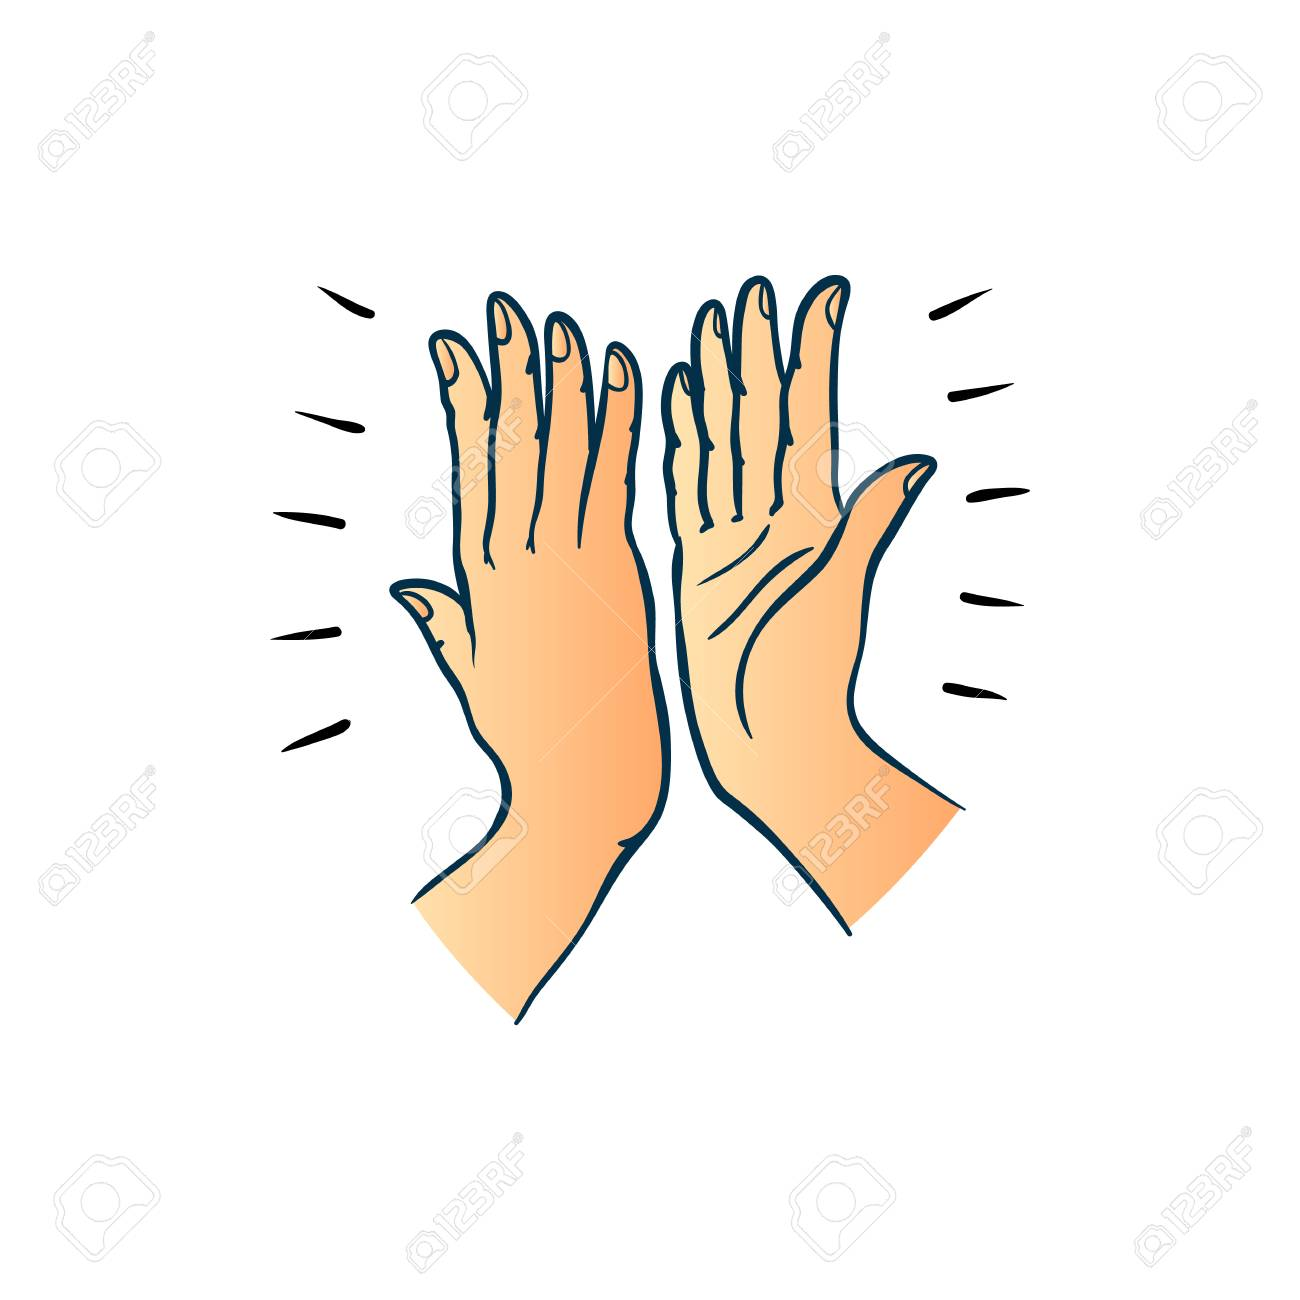 Hand gesture of two people giving each other high five in sketch style isolated on white background - colorful hand drawn vector illustration of hands palms joining together. - 101969600